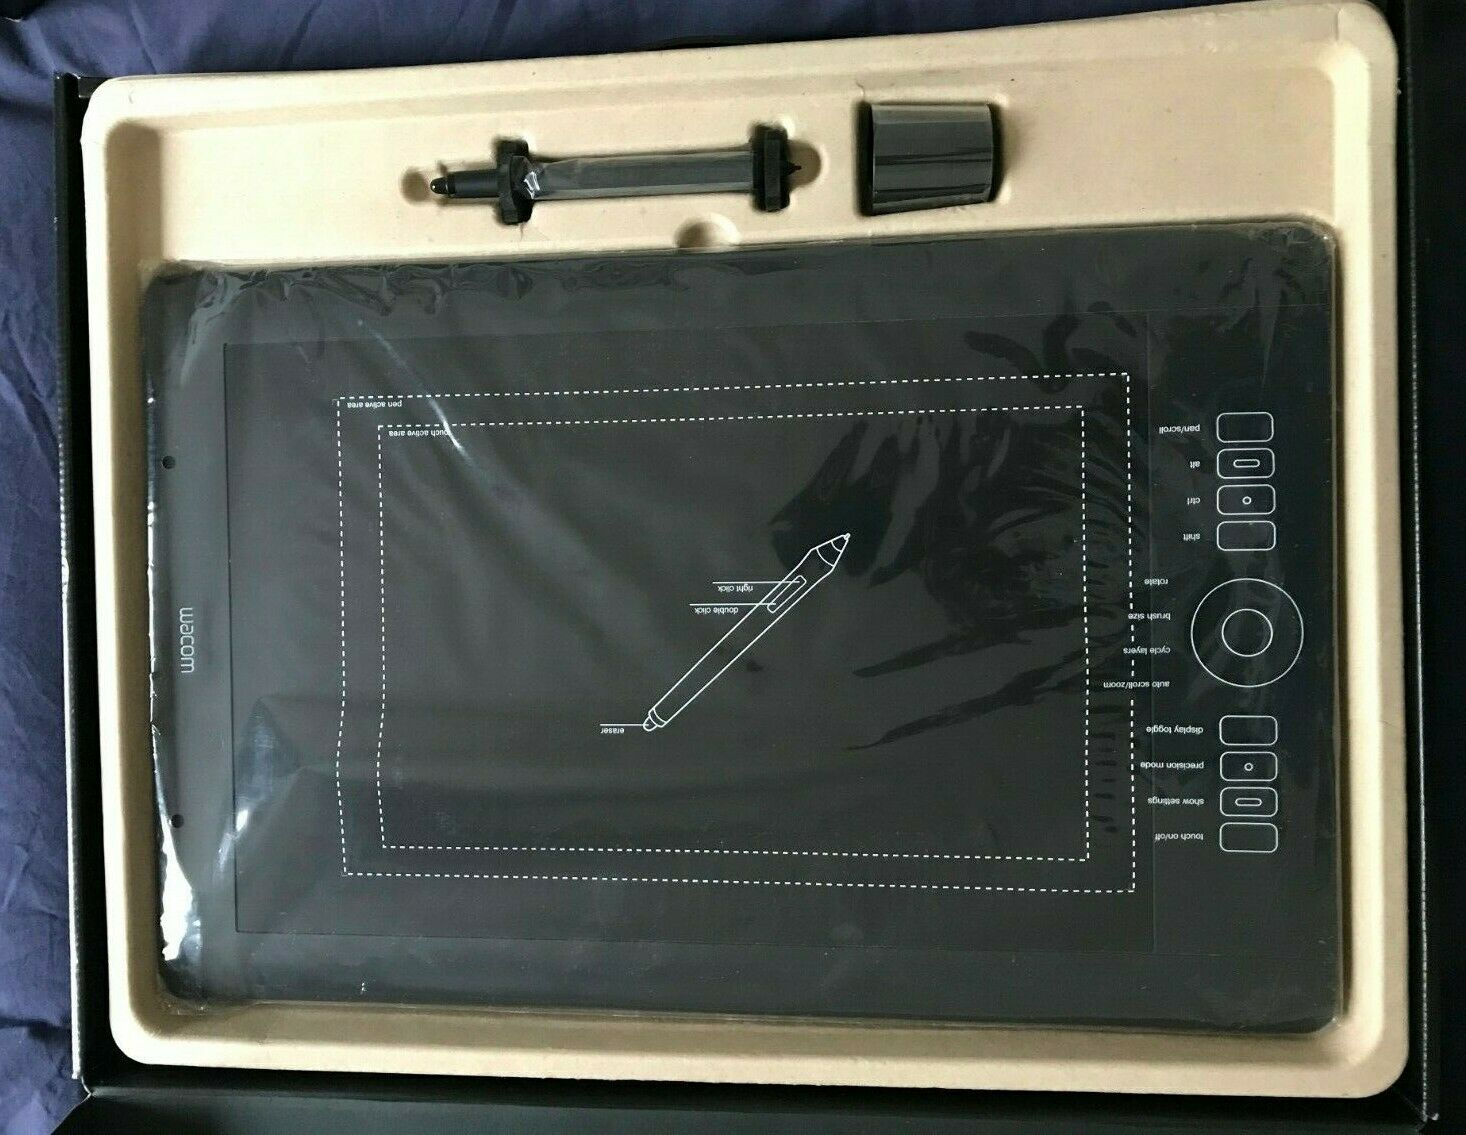 Tablette graphique wacom intuos 5 touch pth-850 -- a3 - grand format